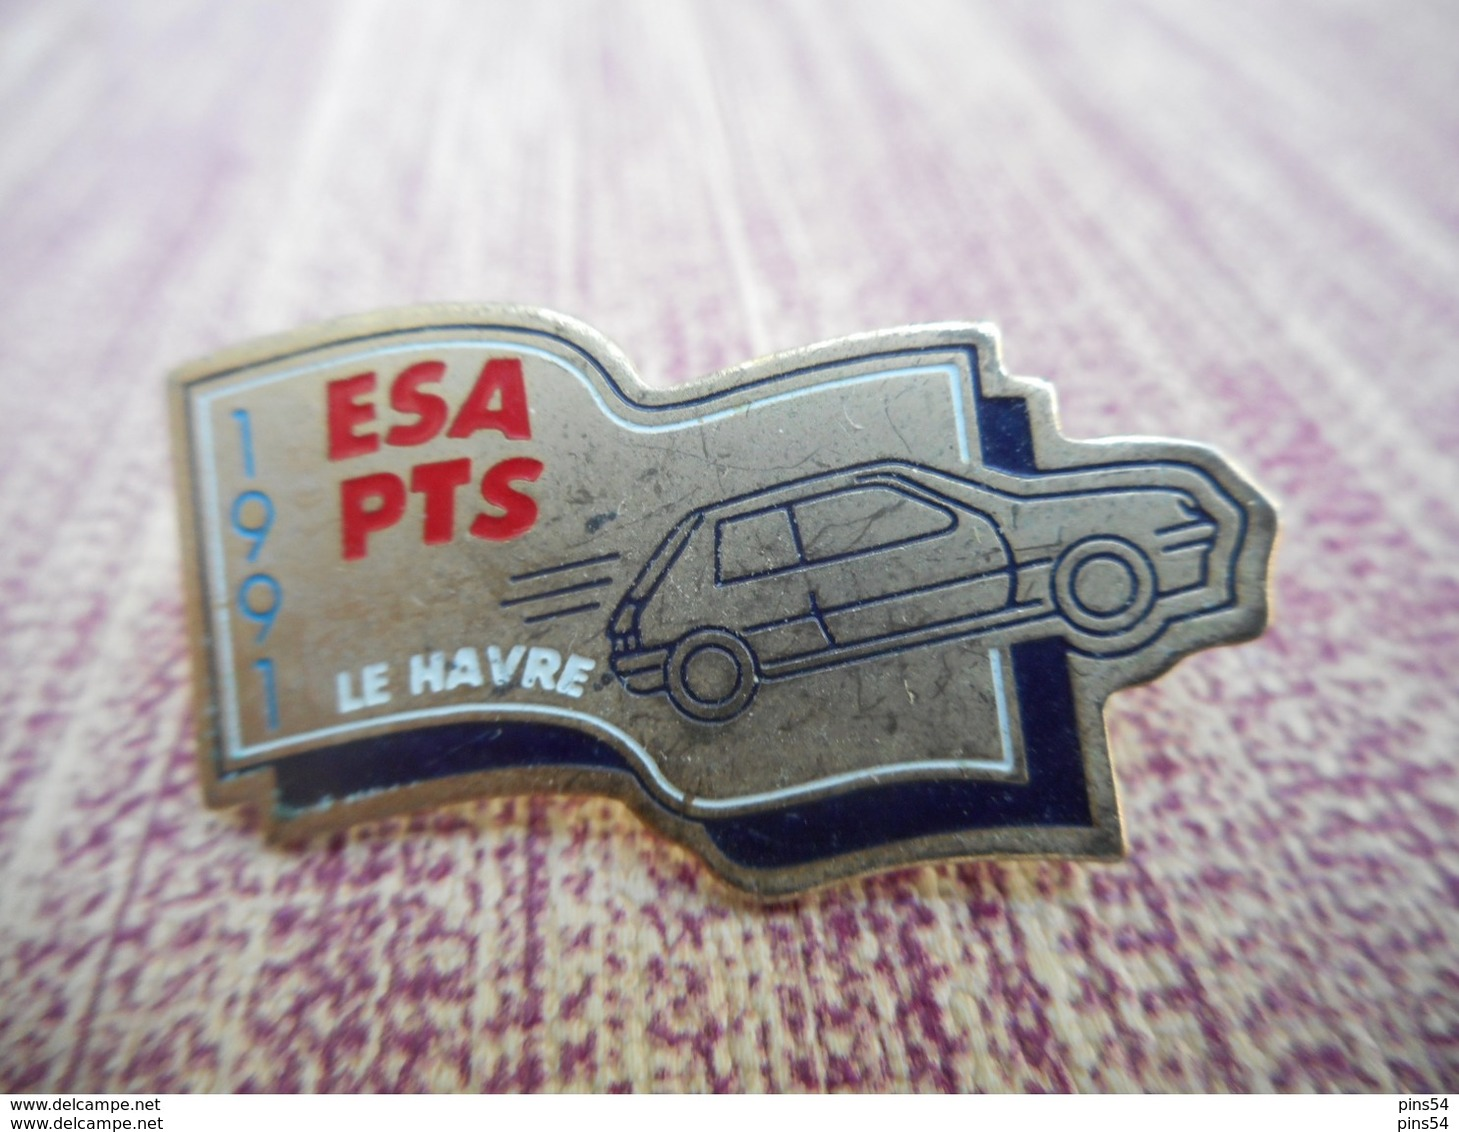 A009 -- Pin's ESA PTS Le Havre 1991 - Andere